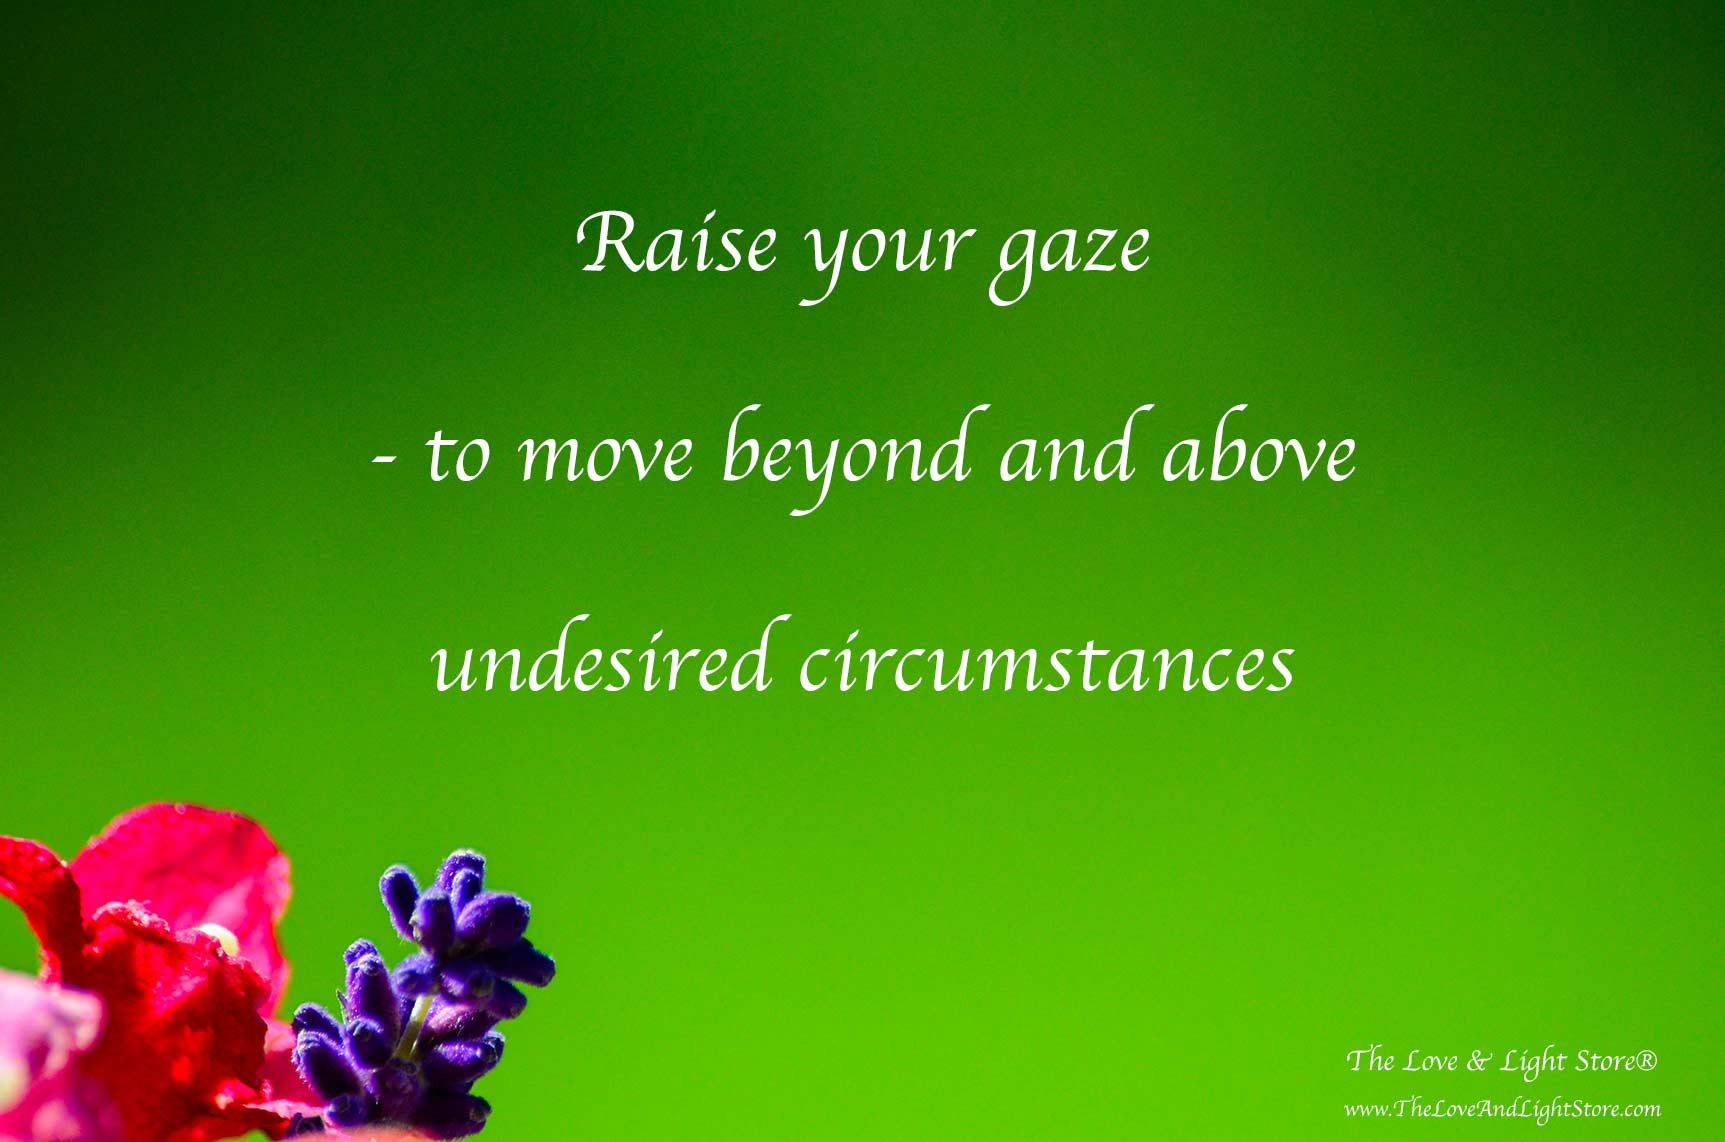 Raise the gaze – to go above and beyond your present circumstances